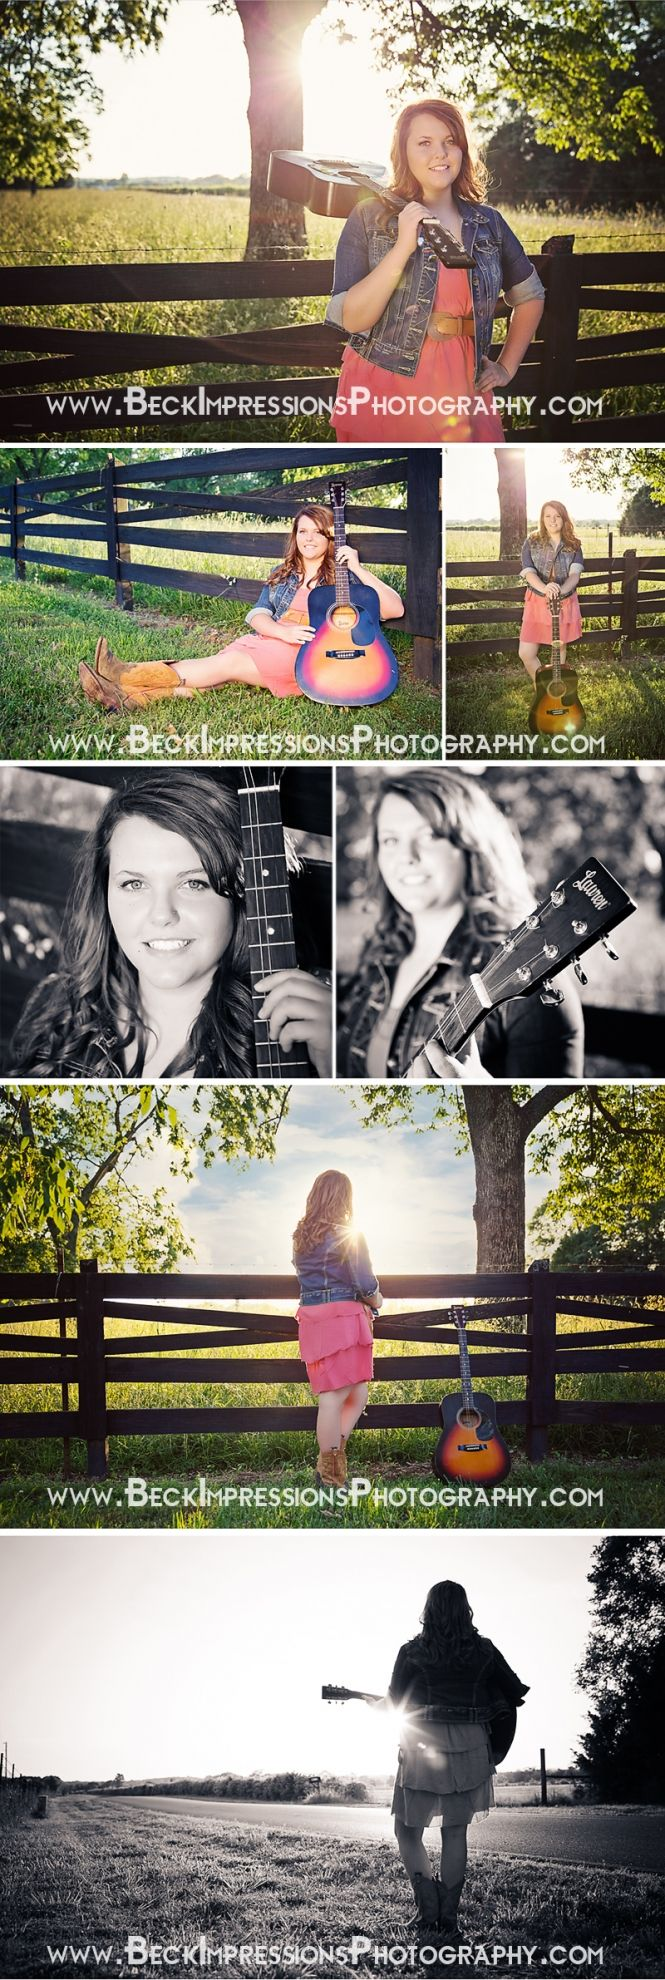 Country Girl Senior Portraits #Guitar #SunFlare  www.BeckImpressionsPhotography.com